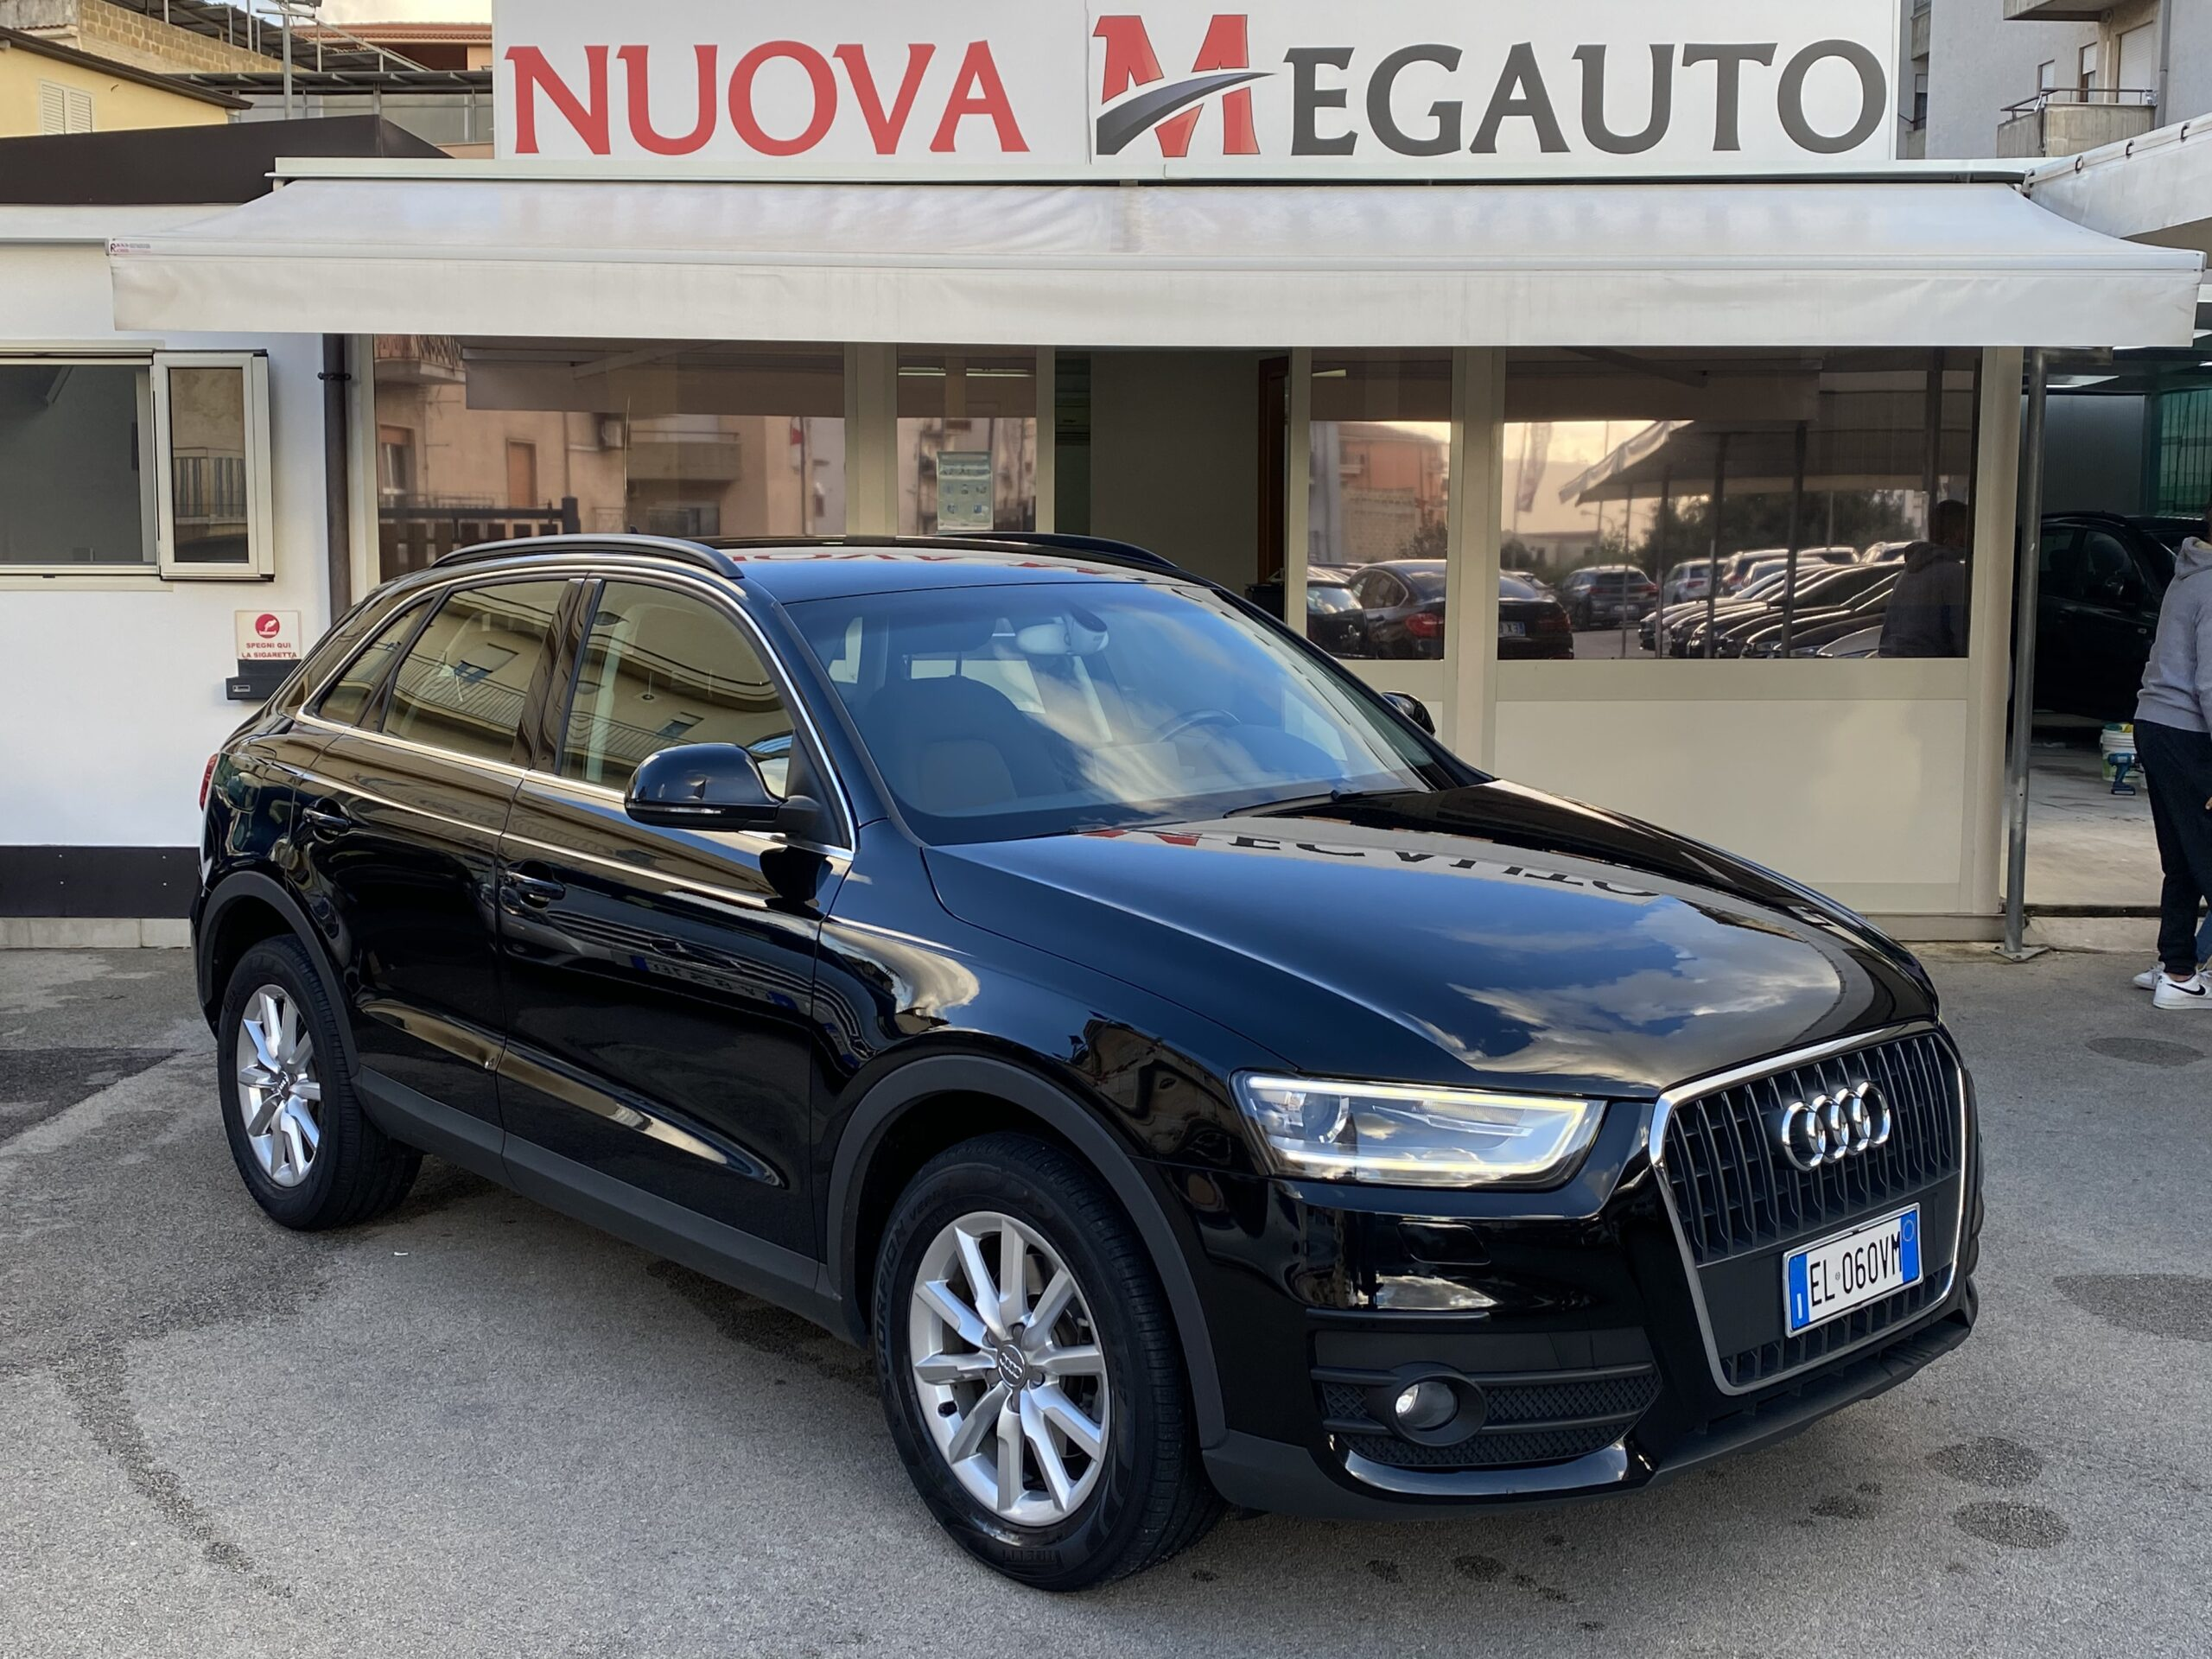 Audi Q3 2.0 TDI Advanced Plus 140CV